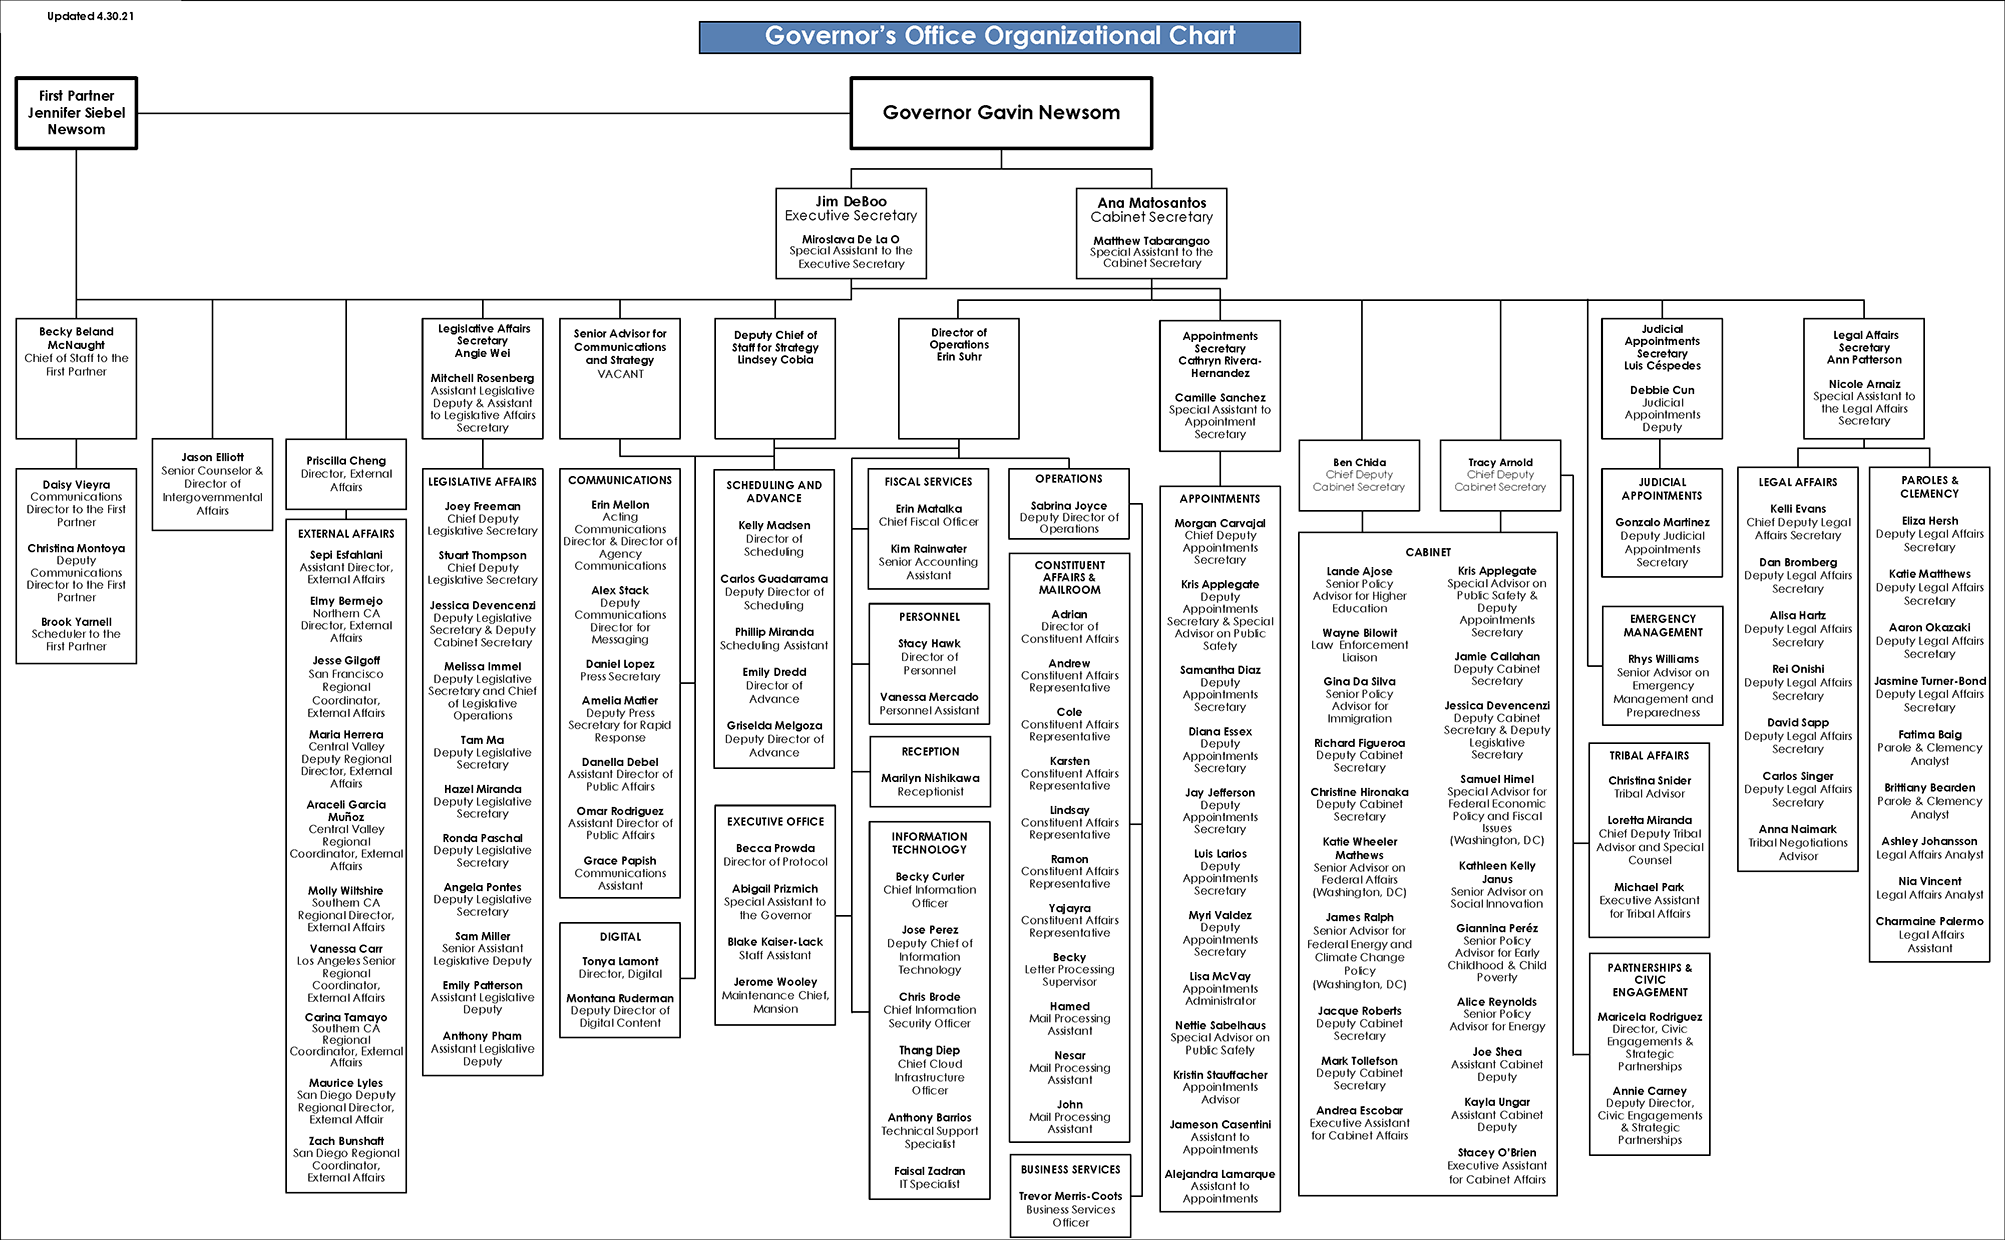 Governor's Office Organizational Chart